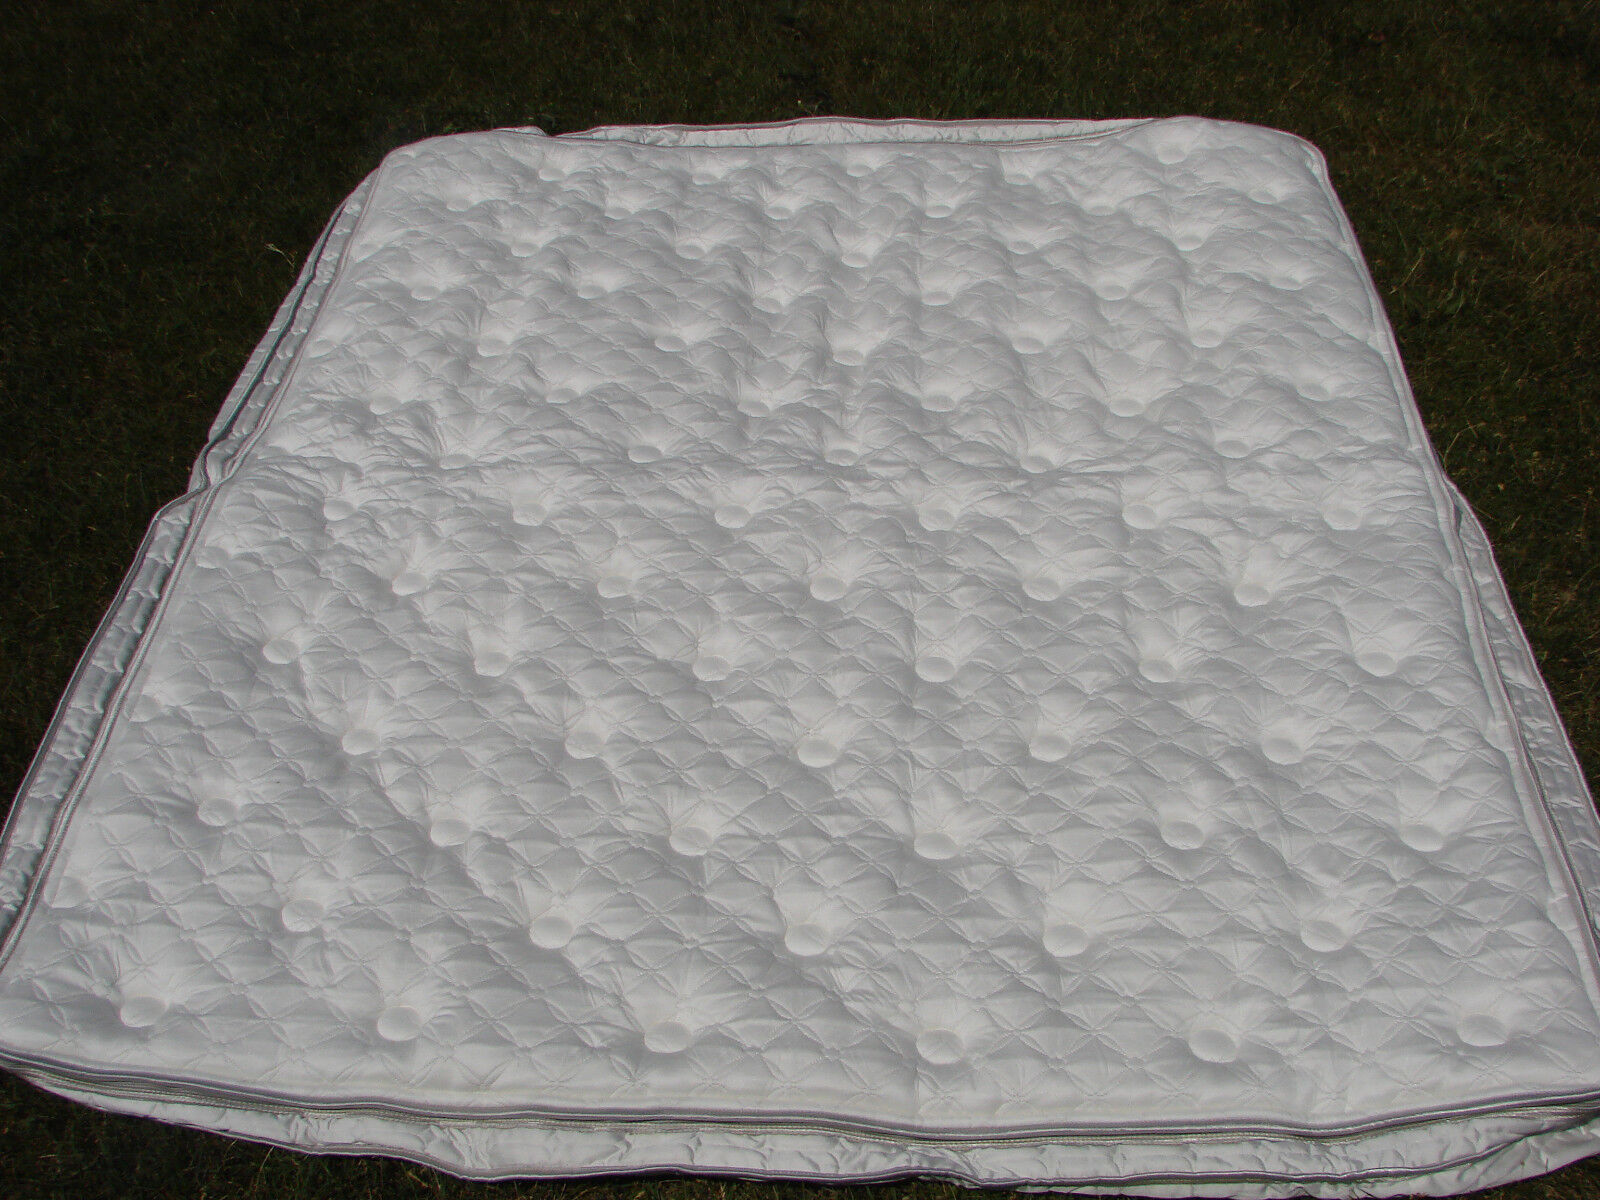 Image Result For Sleep Number King Pillow Top